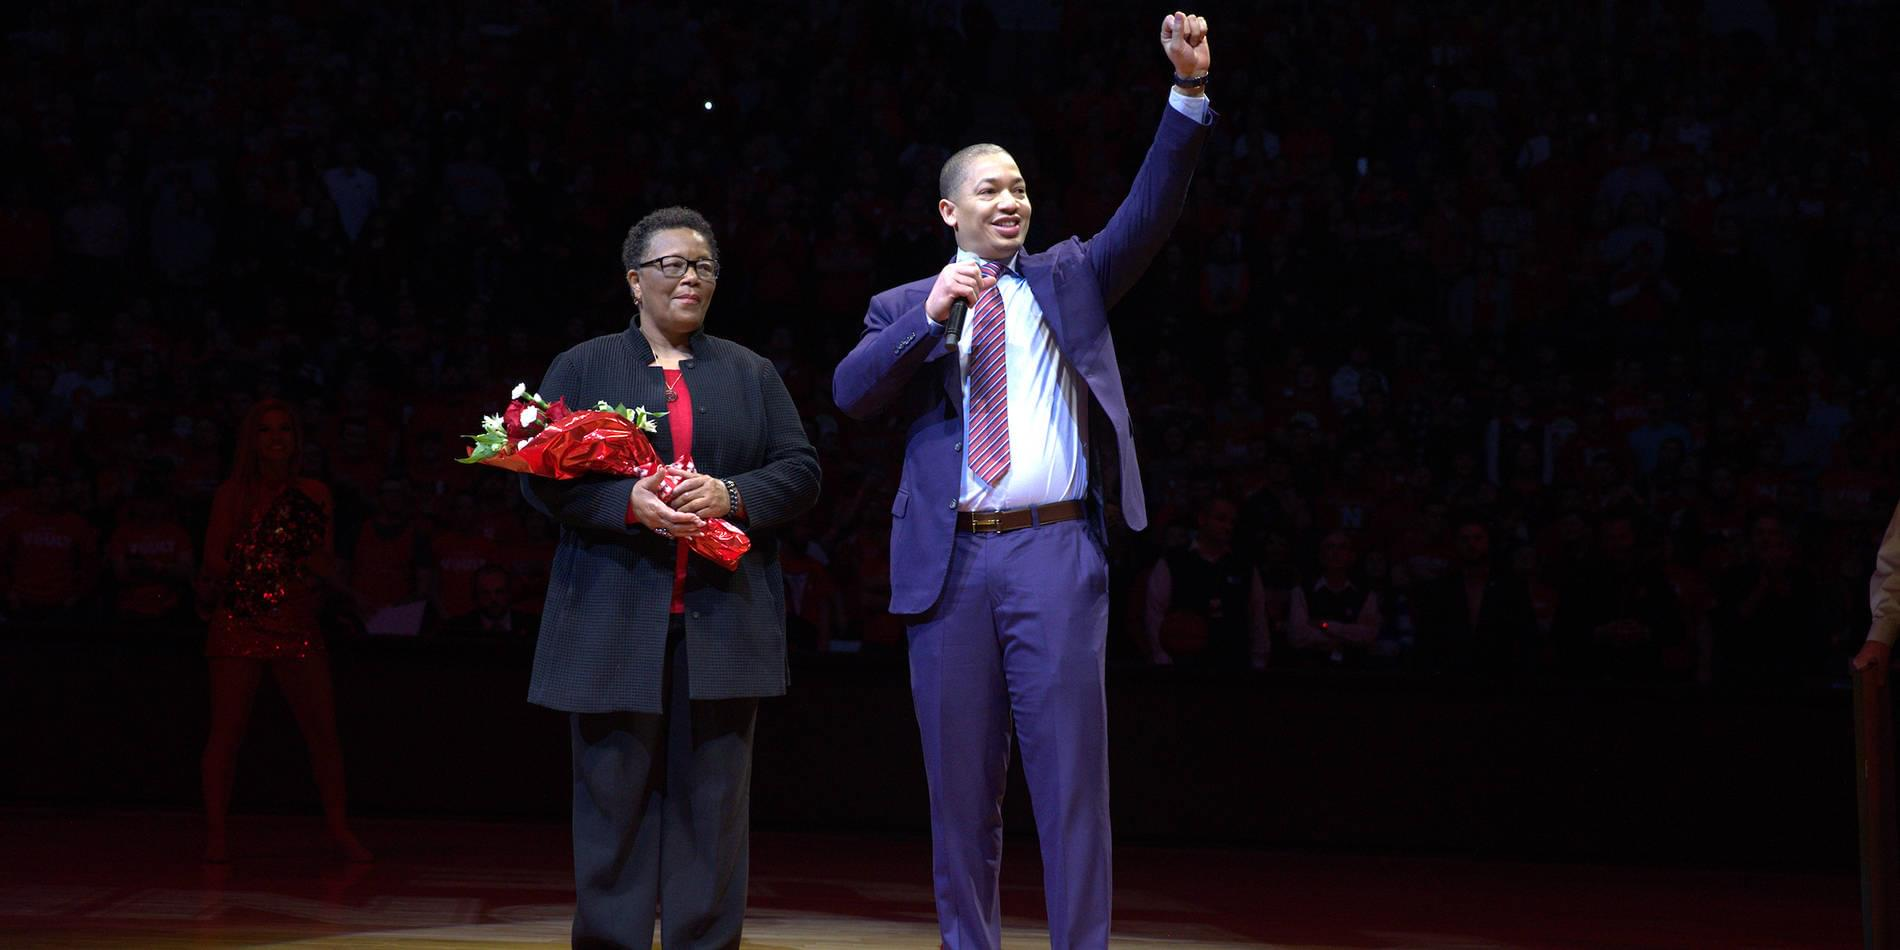 Former Husker Lue Named Clippers Head Coach